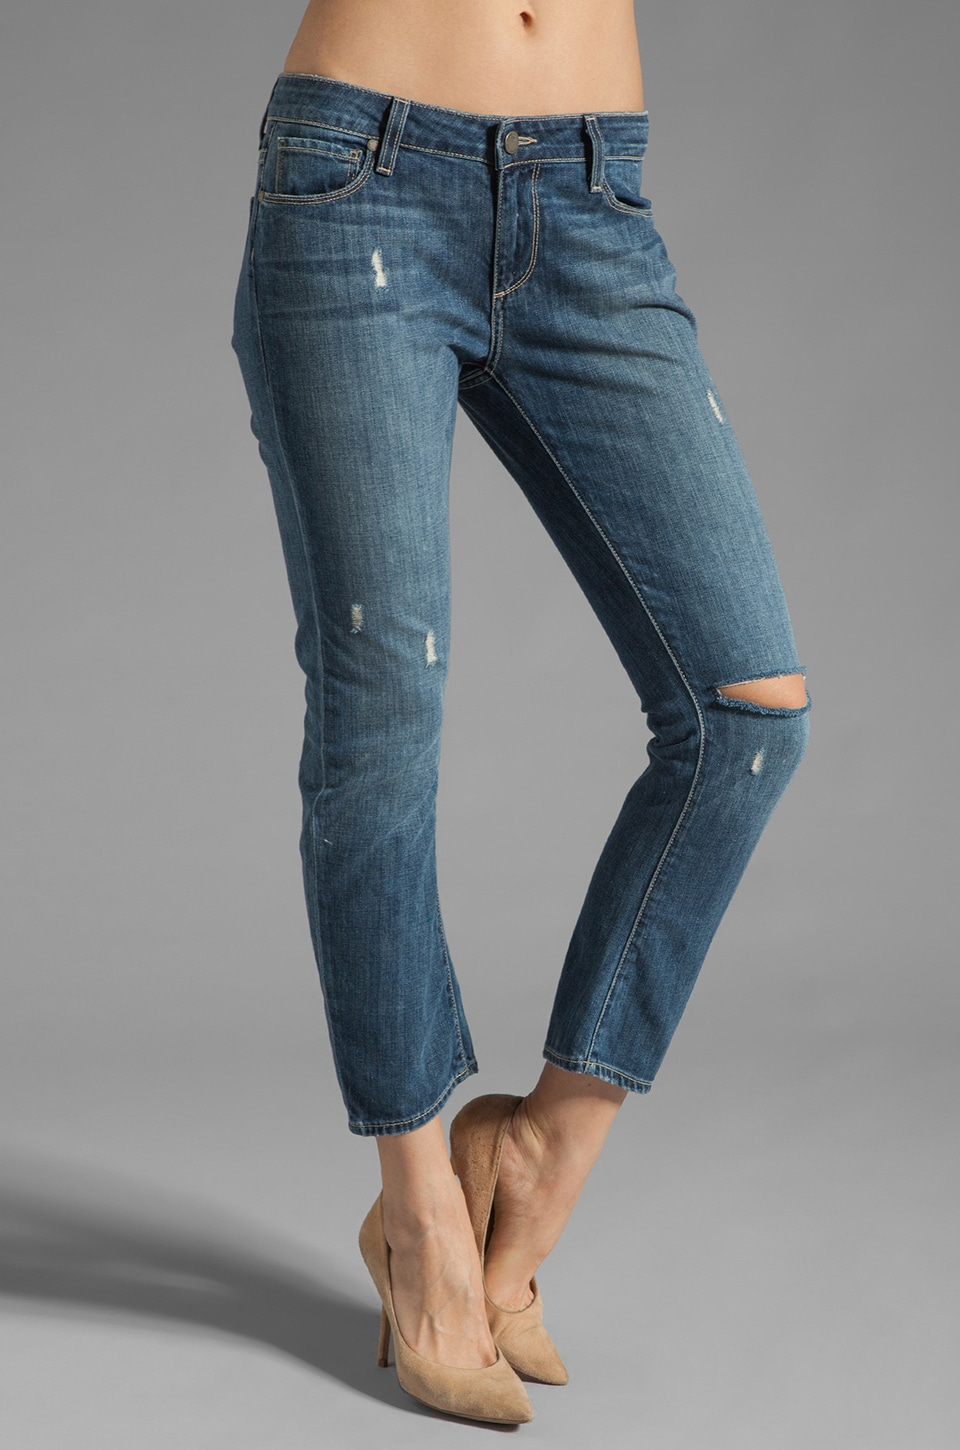 Paige Denim Lydia Jean in Riley